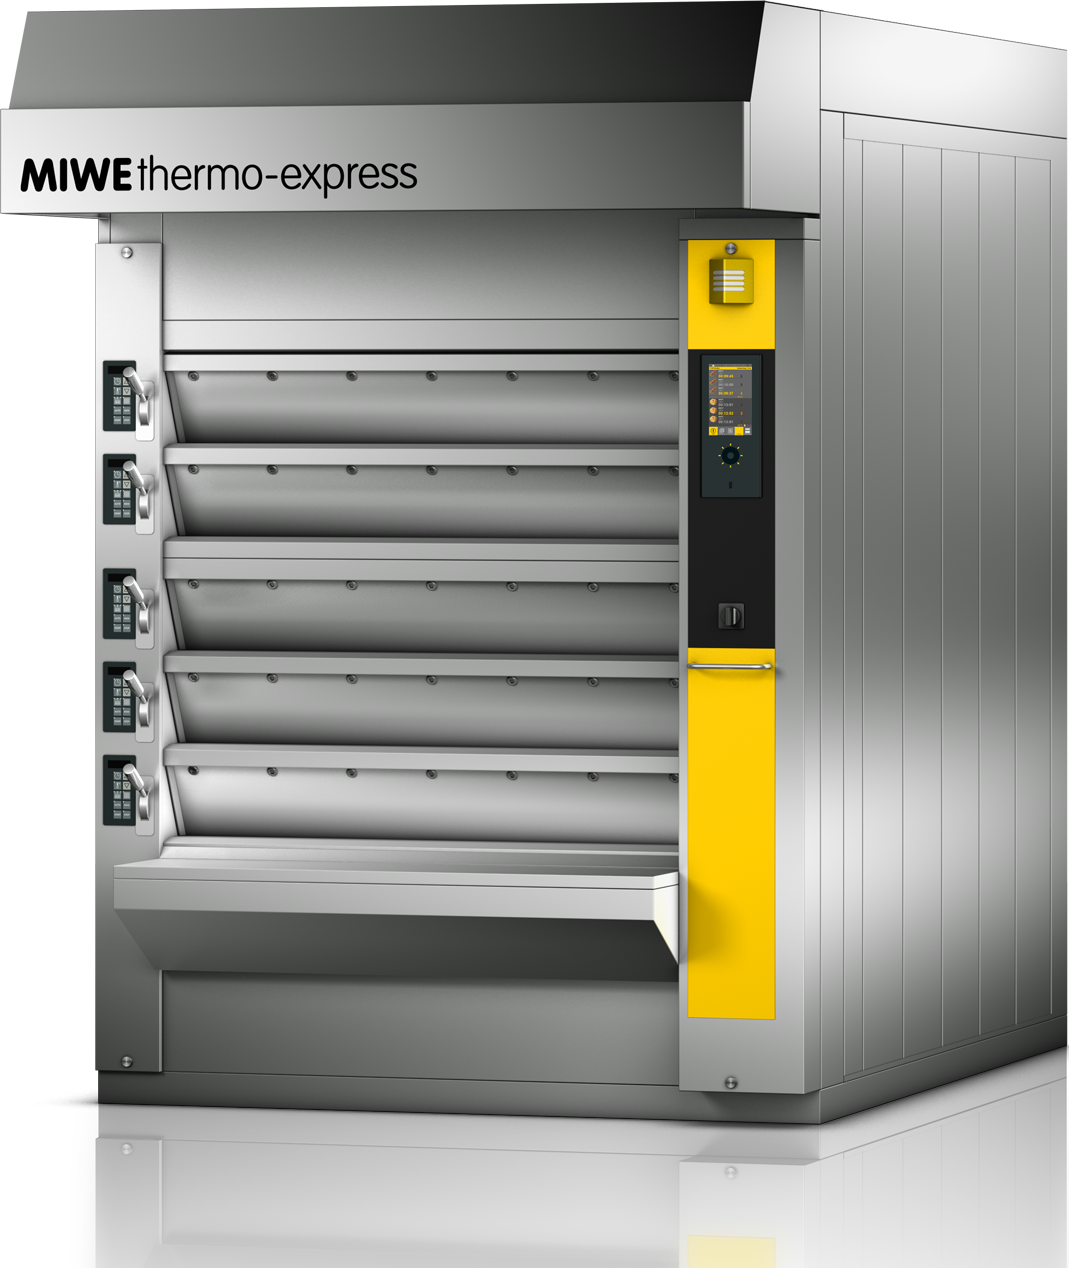 MIWE thermo-express | Thermal oil deck oven